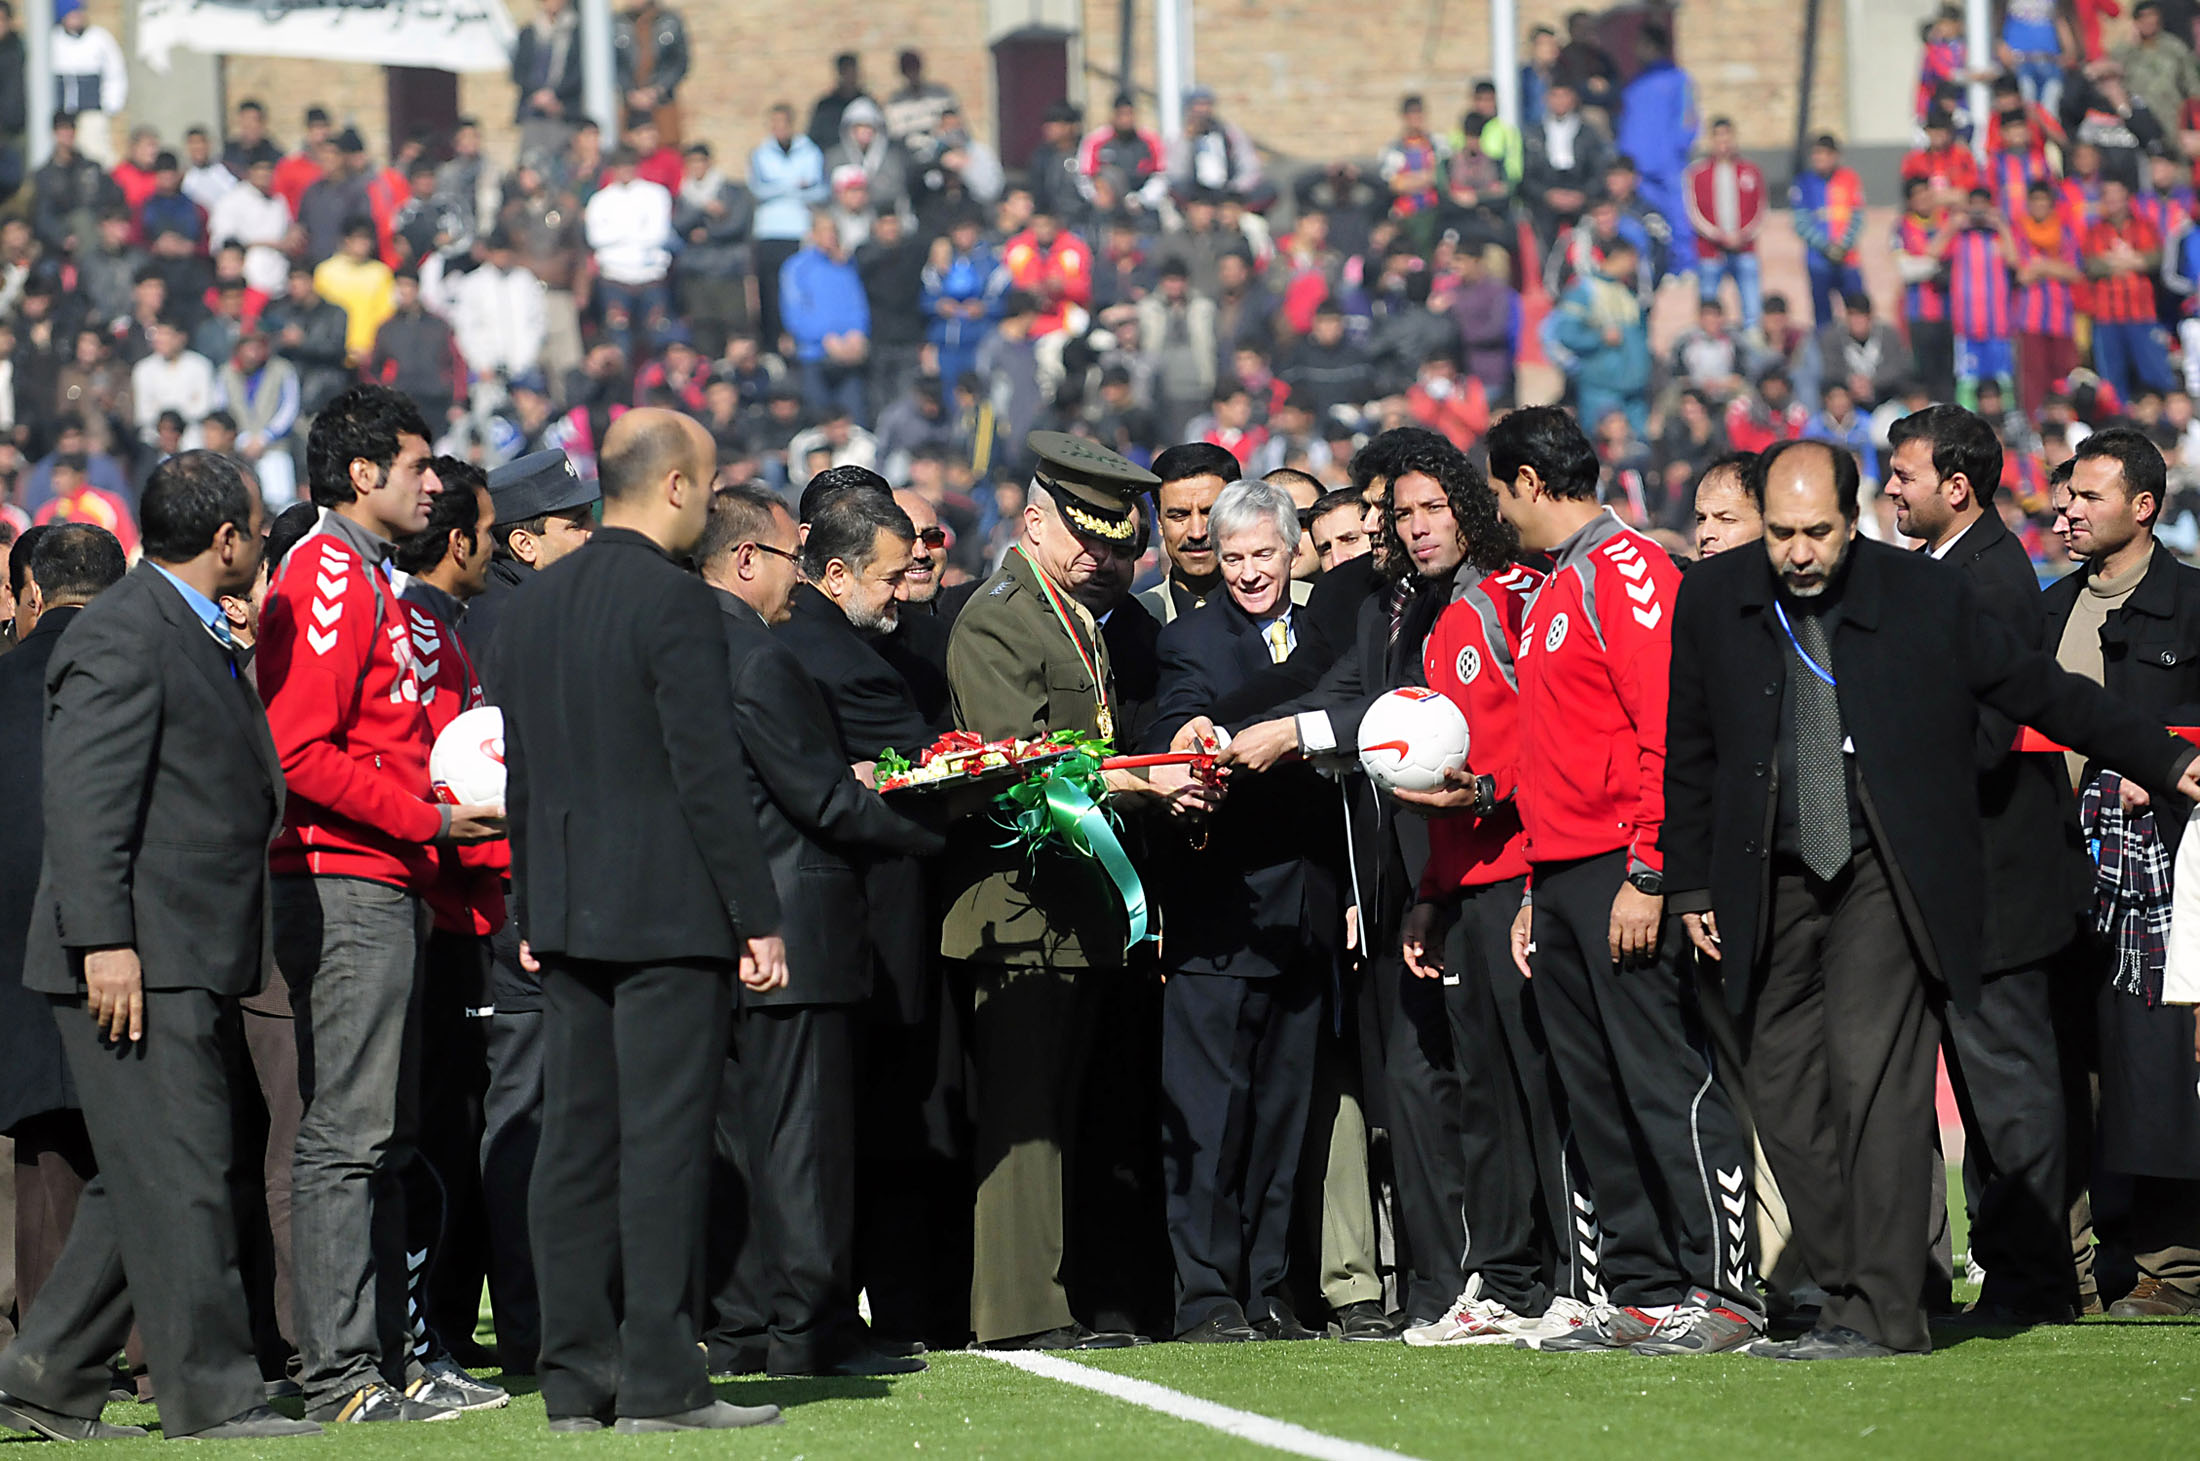 The head of the international security forces in Afghanistan and the US ambassador to the country at the official opening of the renovated Ghazi Stadium in December 2011. Photo: US Army/Master Sgt. Kap Kim